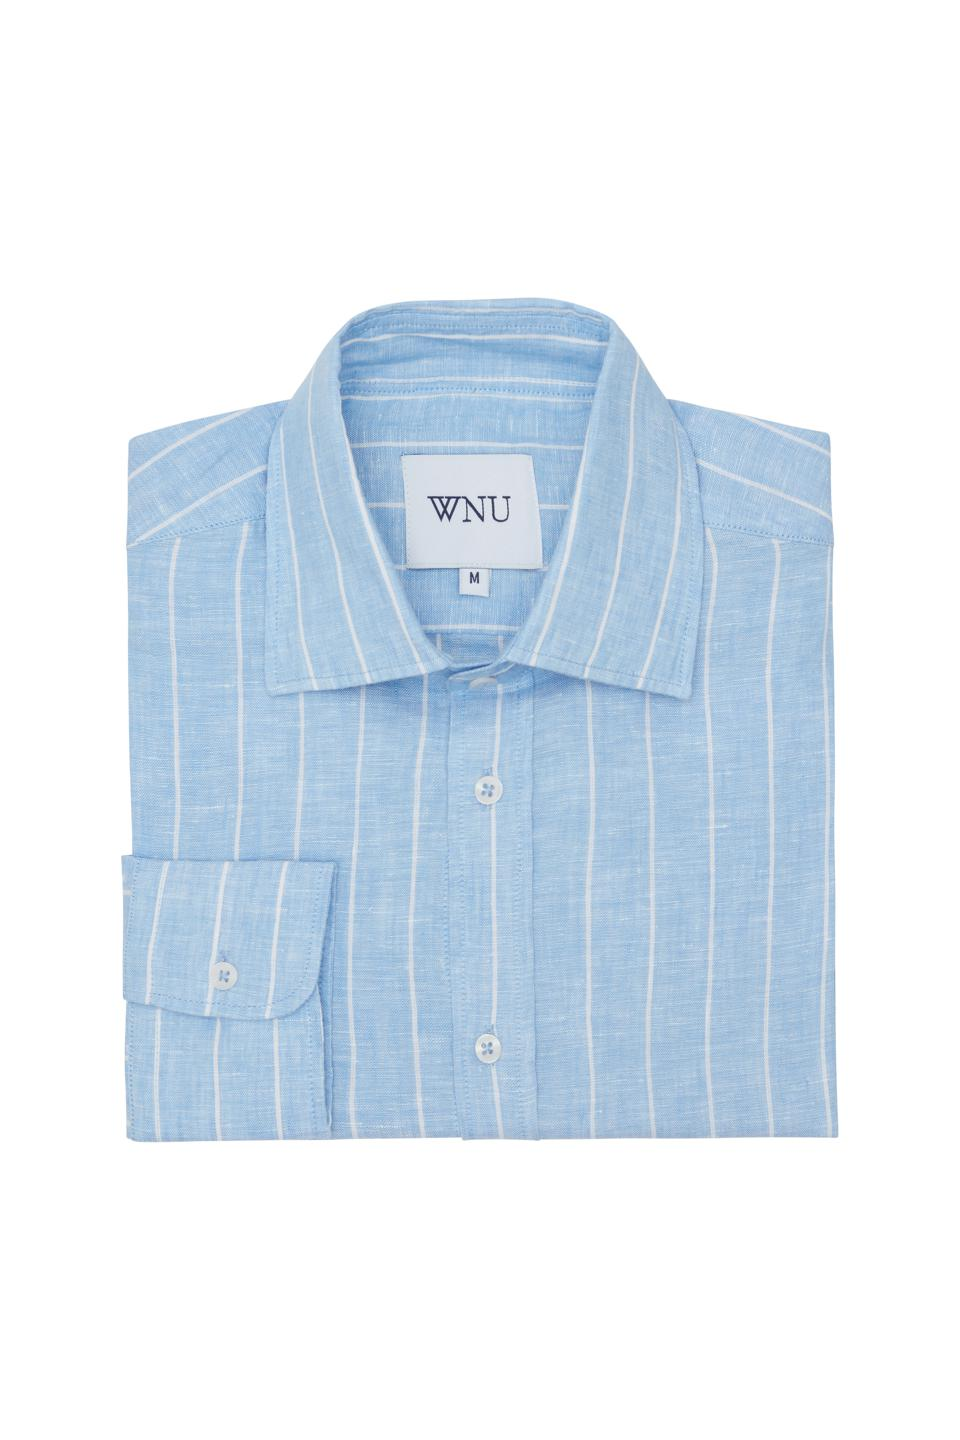 Blue and white stripe linen shirt by WNU